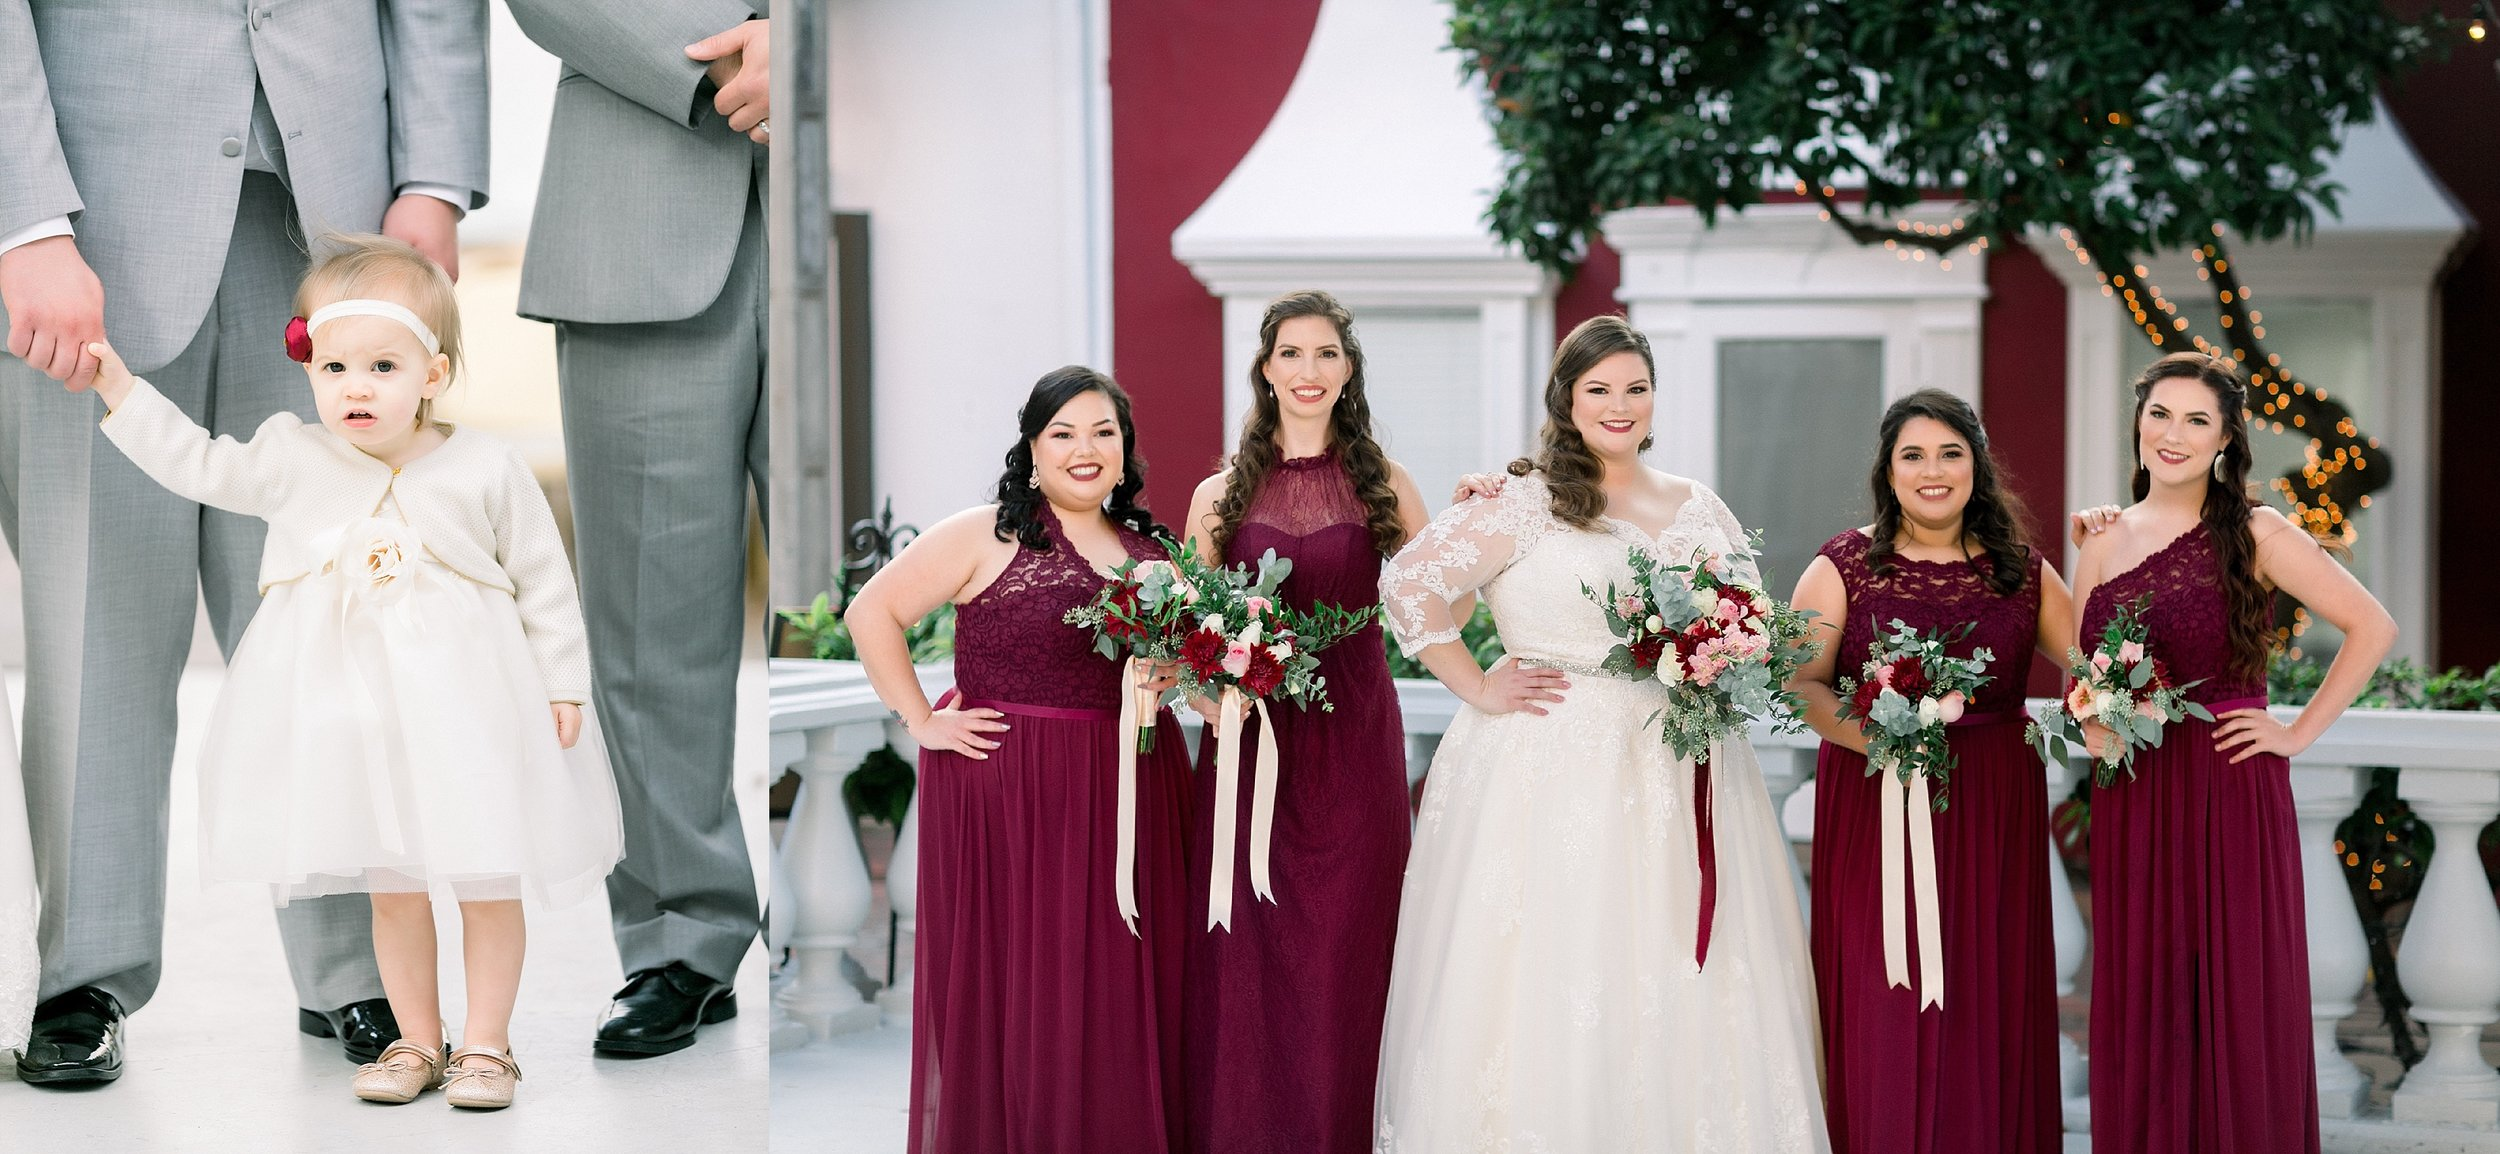 gaslight-at-courtyard-square-corpus-christi-wedding-omni-hotel-fall-winter-wedding-texas-wedding-photographer-lauren-pinson-0038.jpg